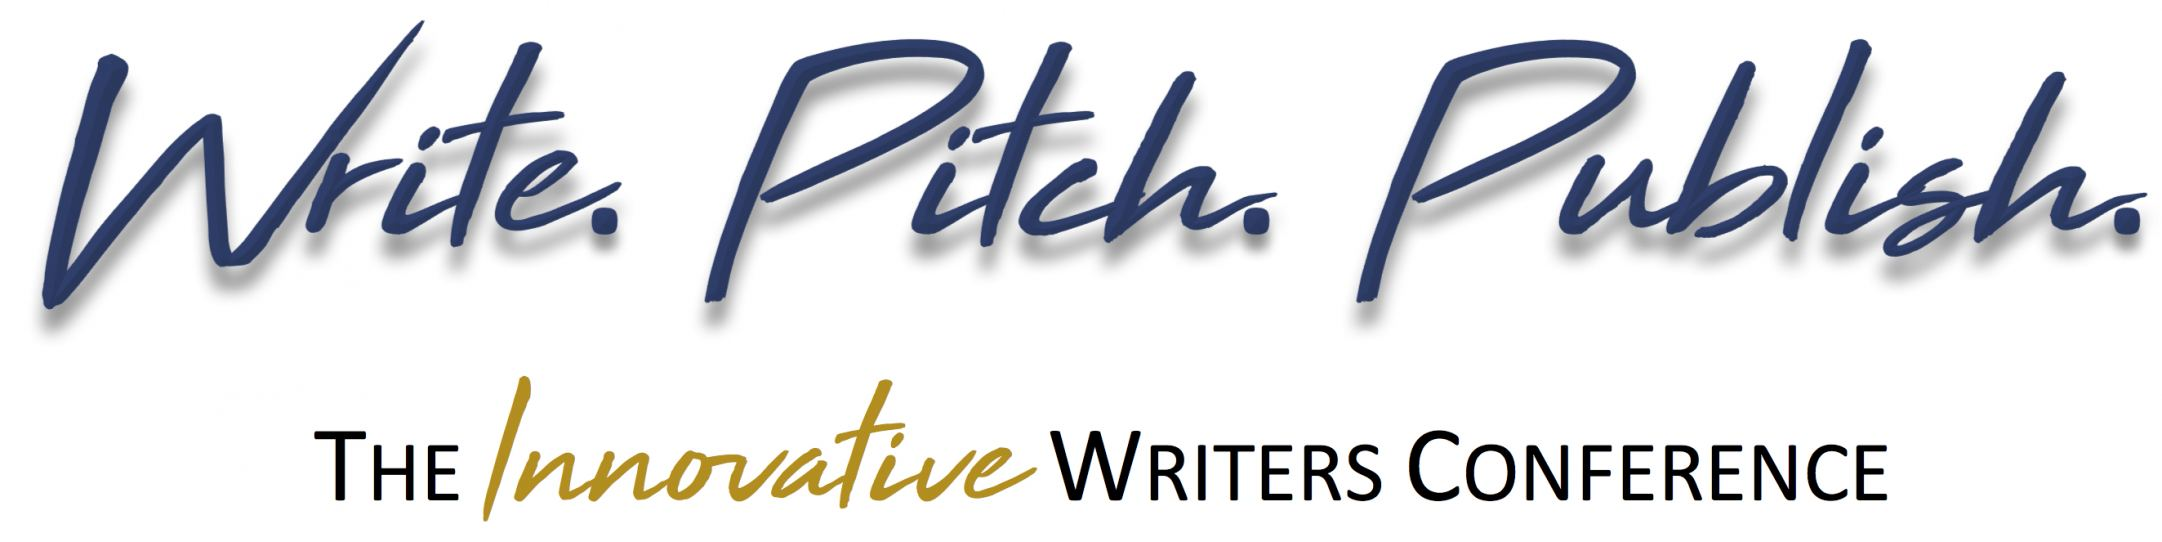 Write Pitch Publish Logo